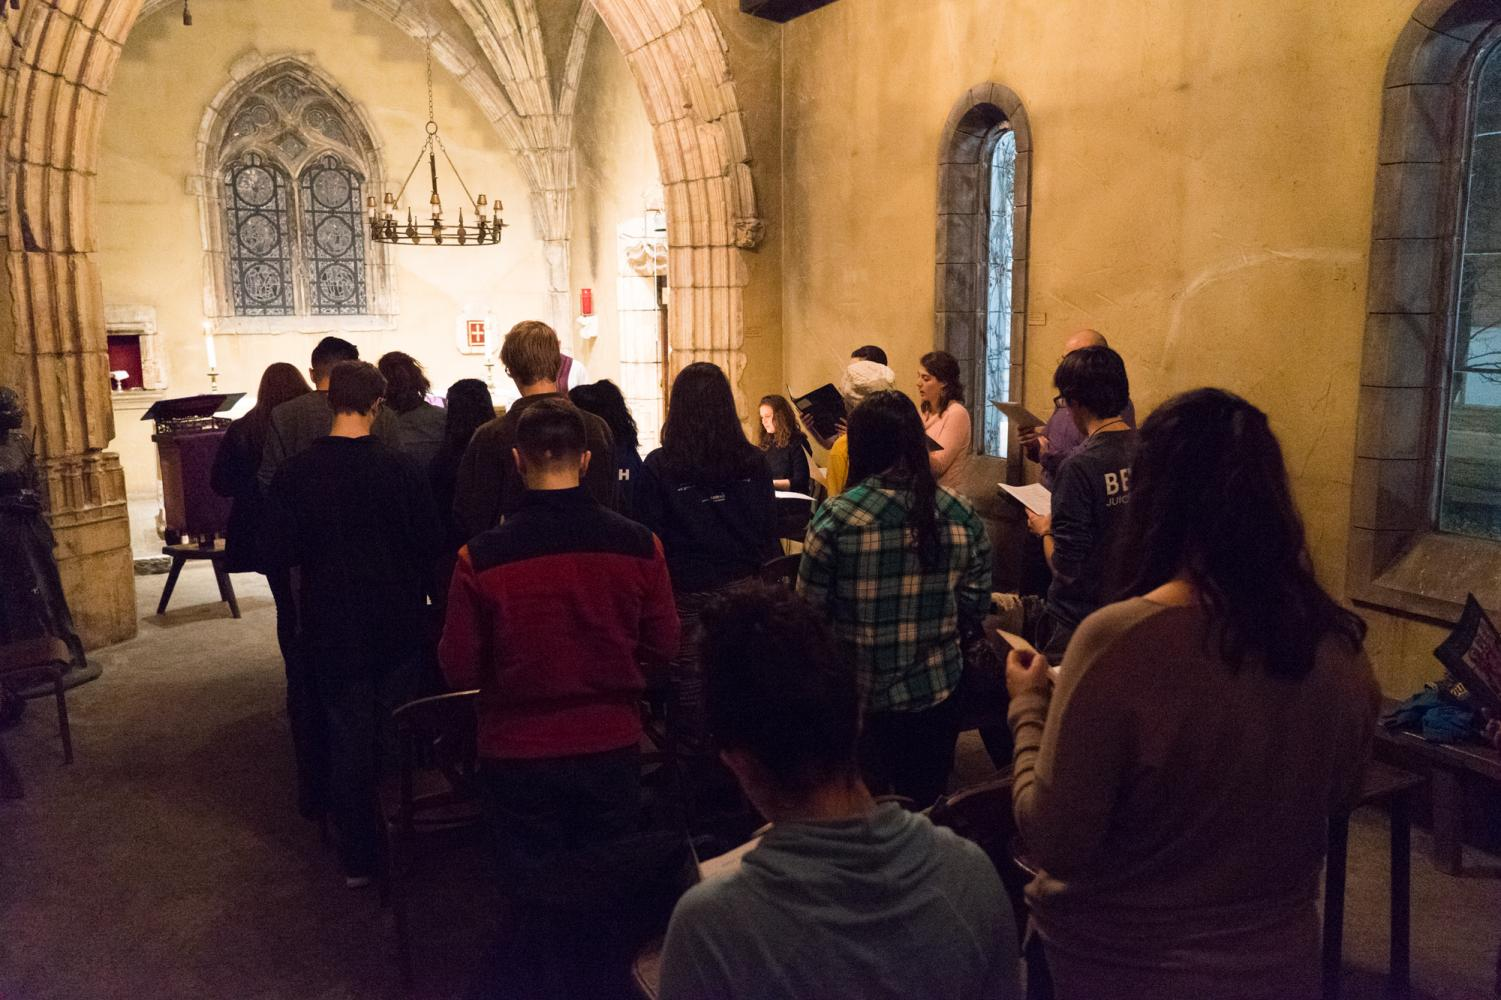 Joan of Arc Chapel provides an intimate mass setting for students on weeknights.